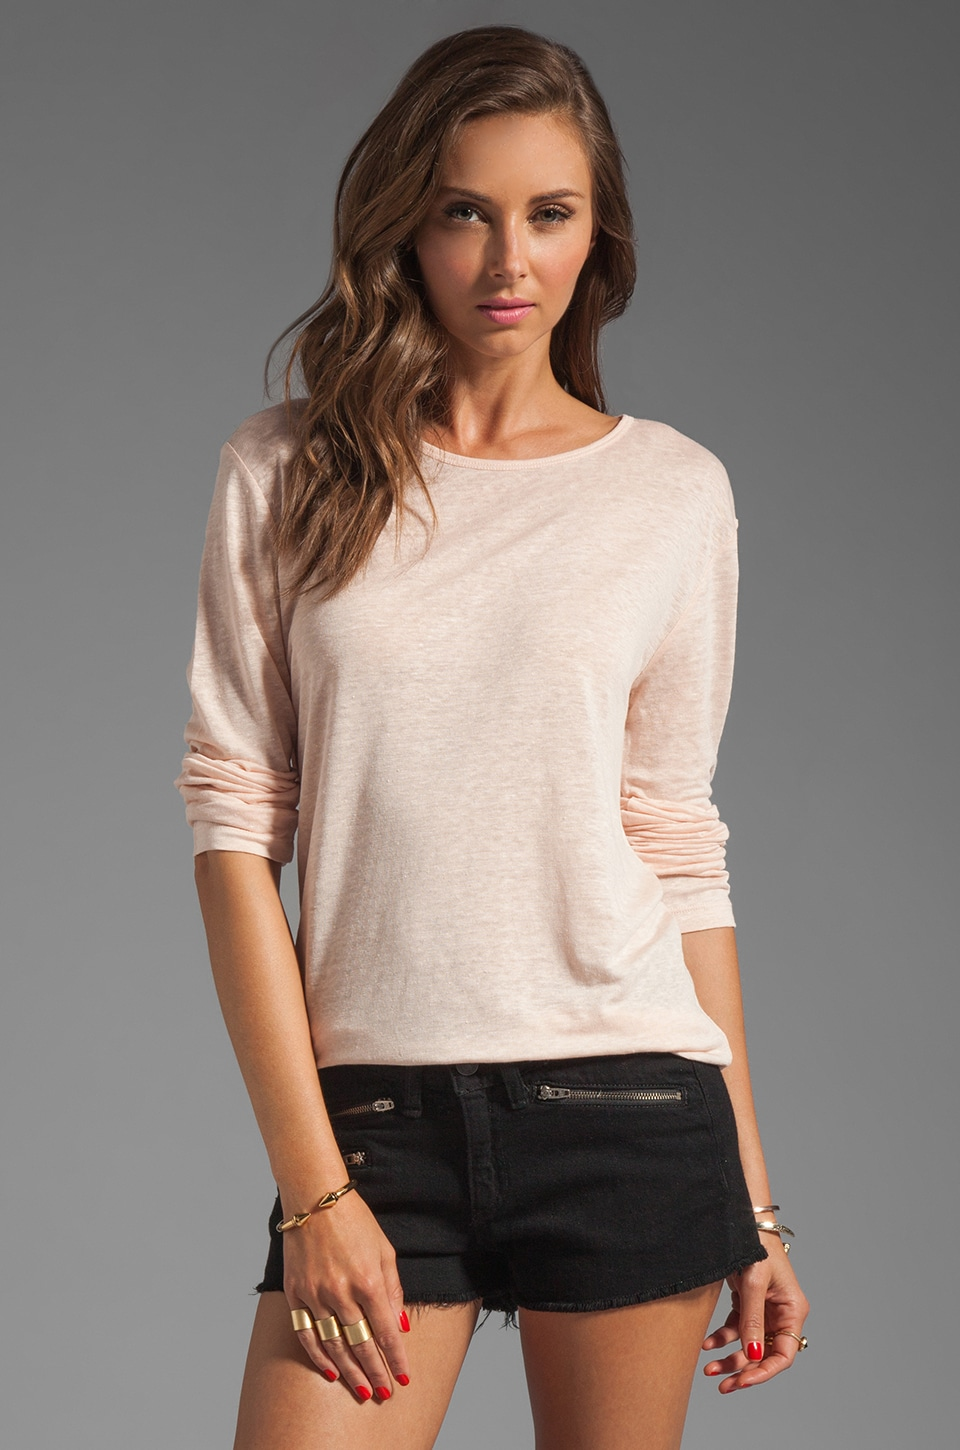 T by Alexander Wang Linen Silk Long Sleeve Tee in Blush